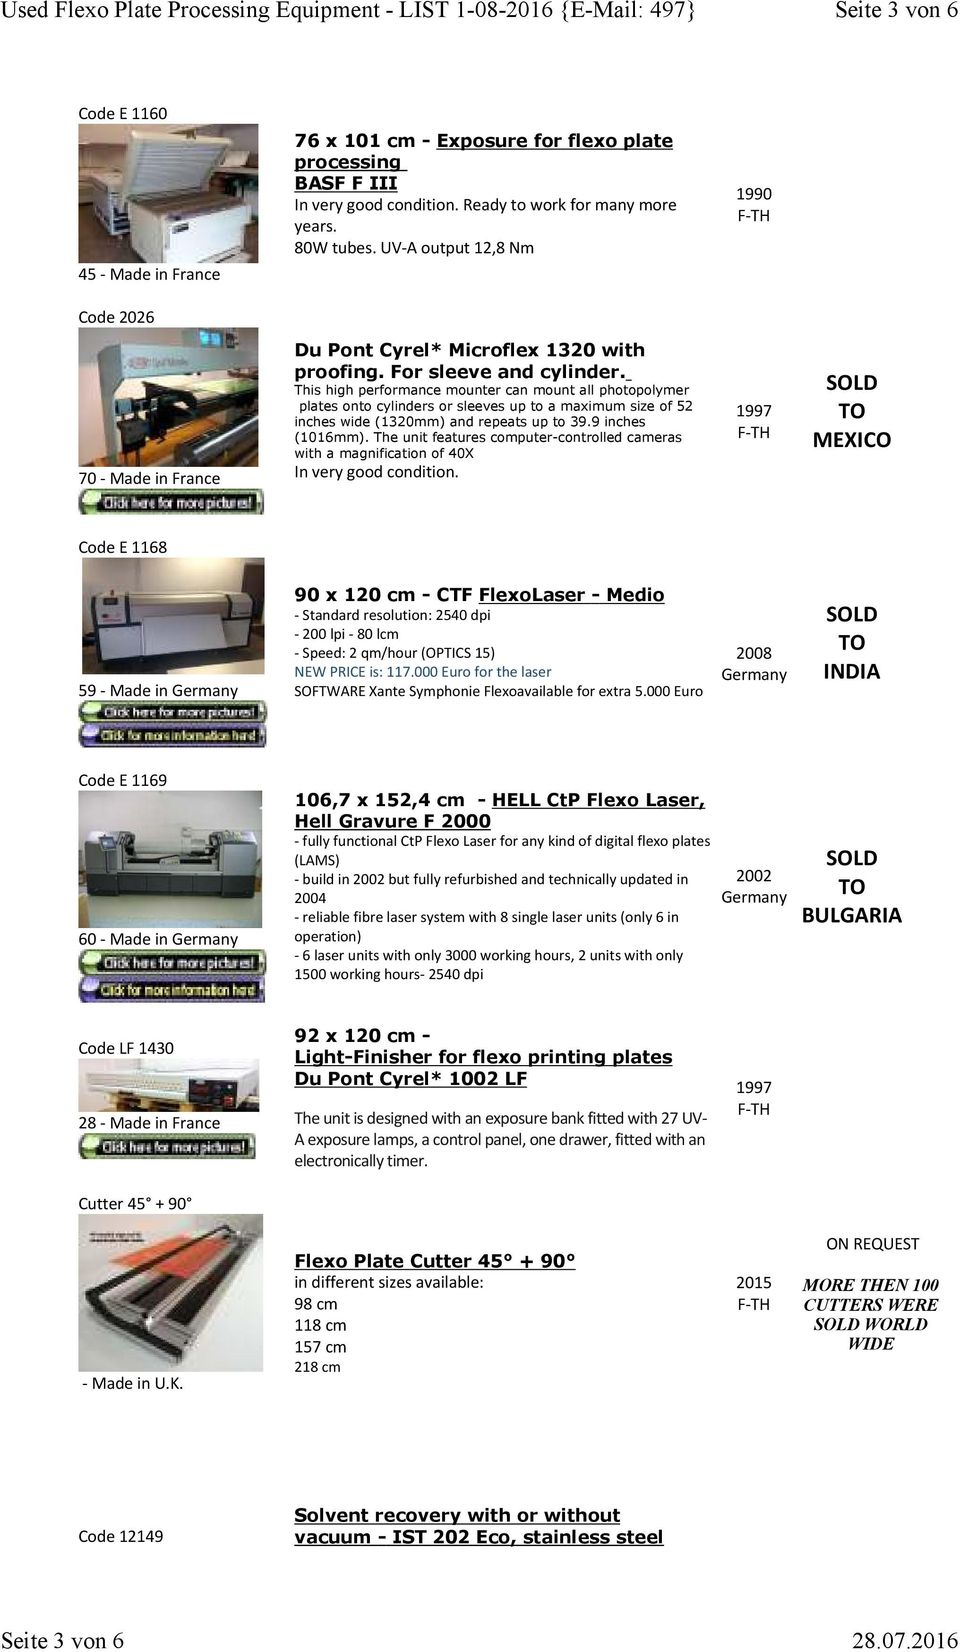 Used Flexo Plate Processing Equipment - LIST { 497} NEW in